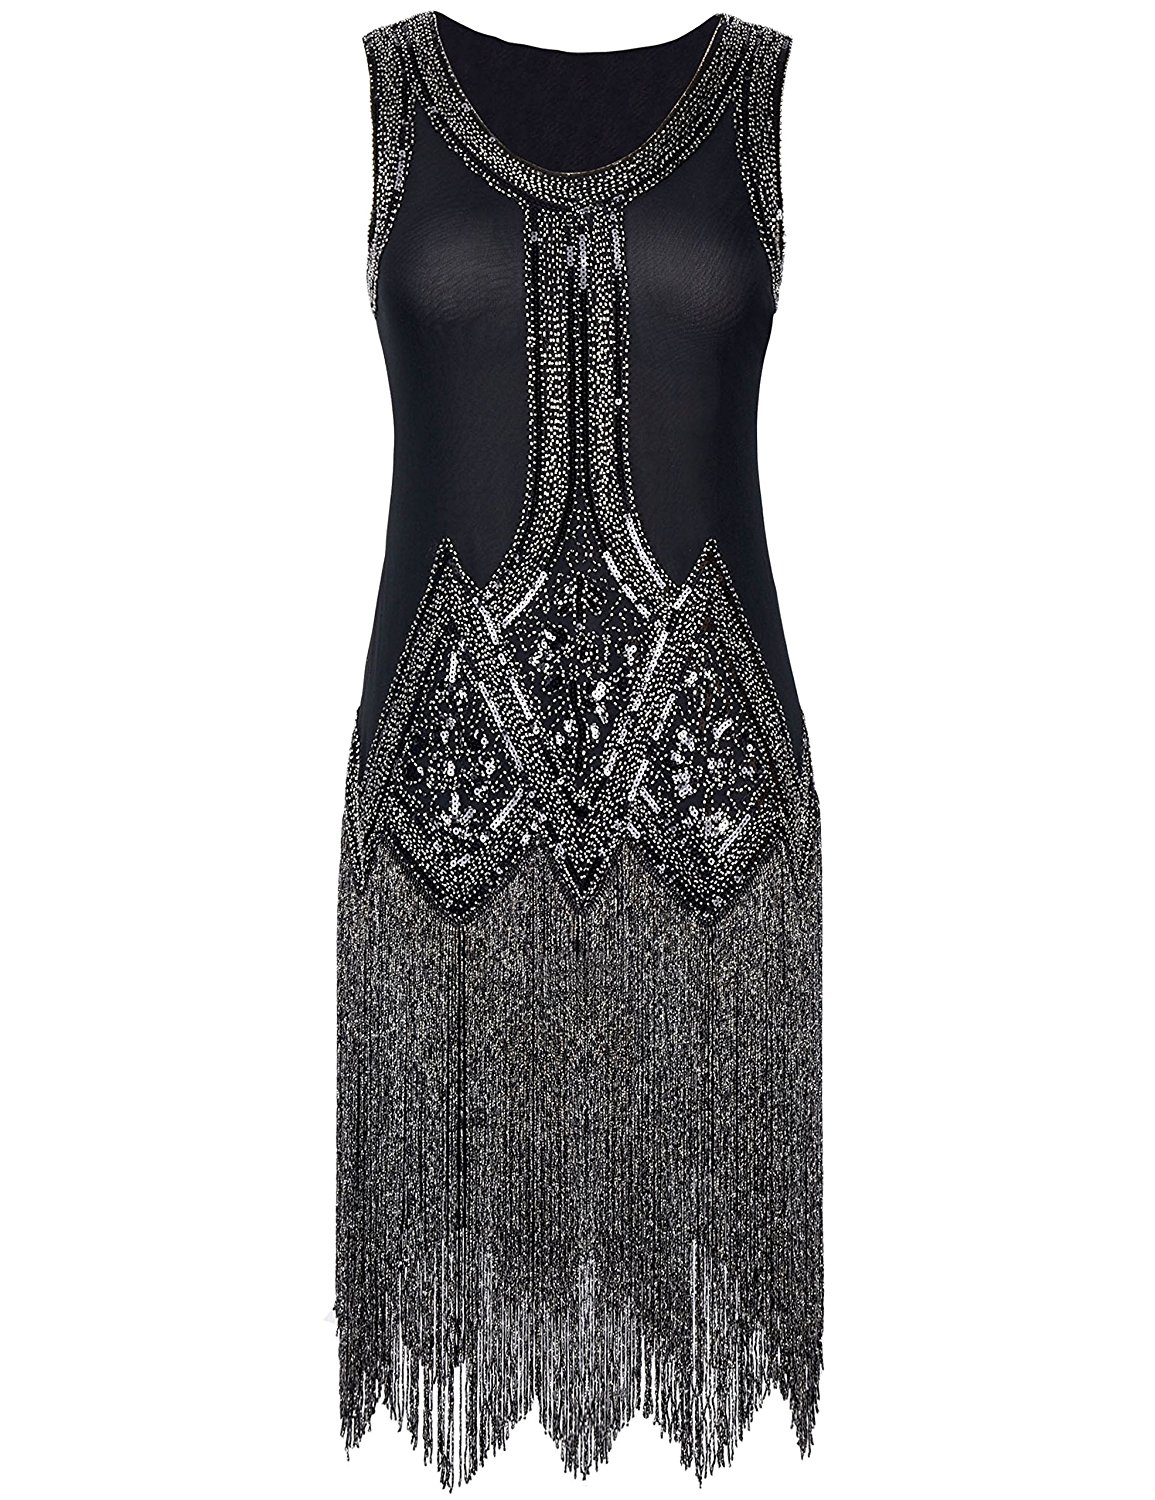 Get Quotations · PrettyGuide Women s Gatsby Dress 1920s Beaded Fringed Inspired  Cocktail Flapper Dress a3d39561870a